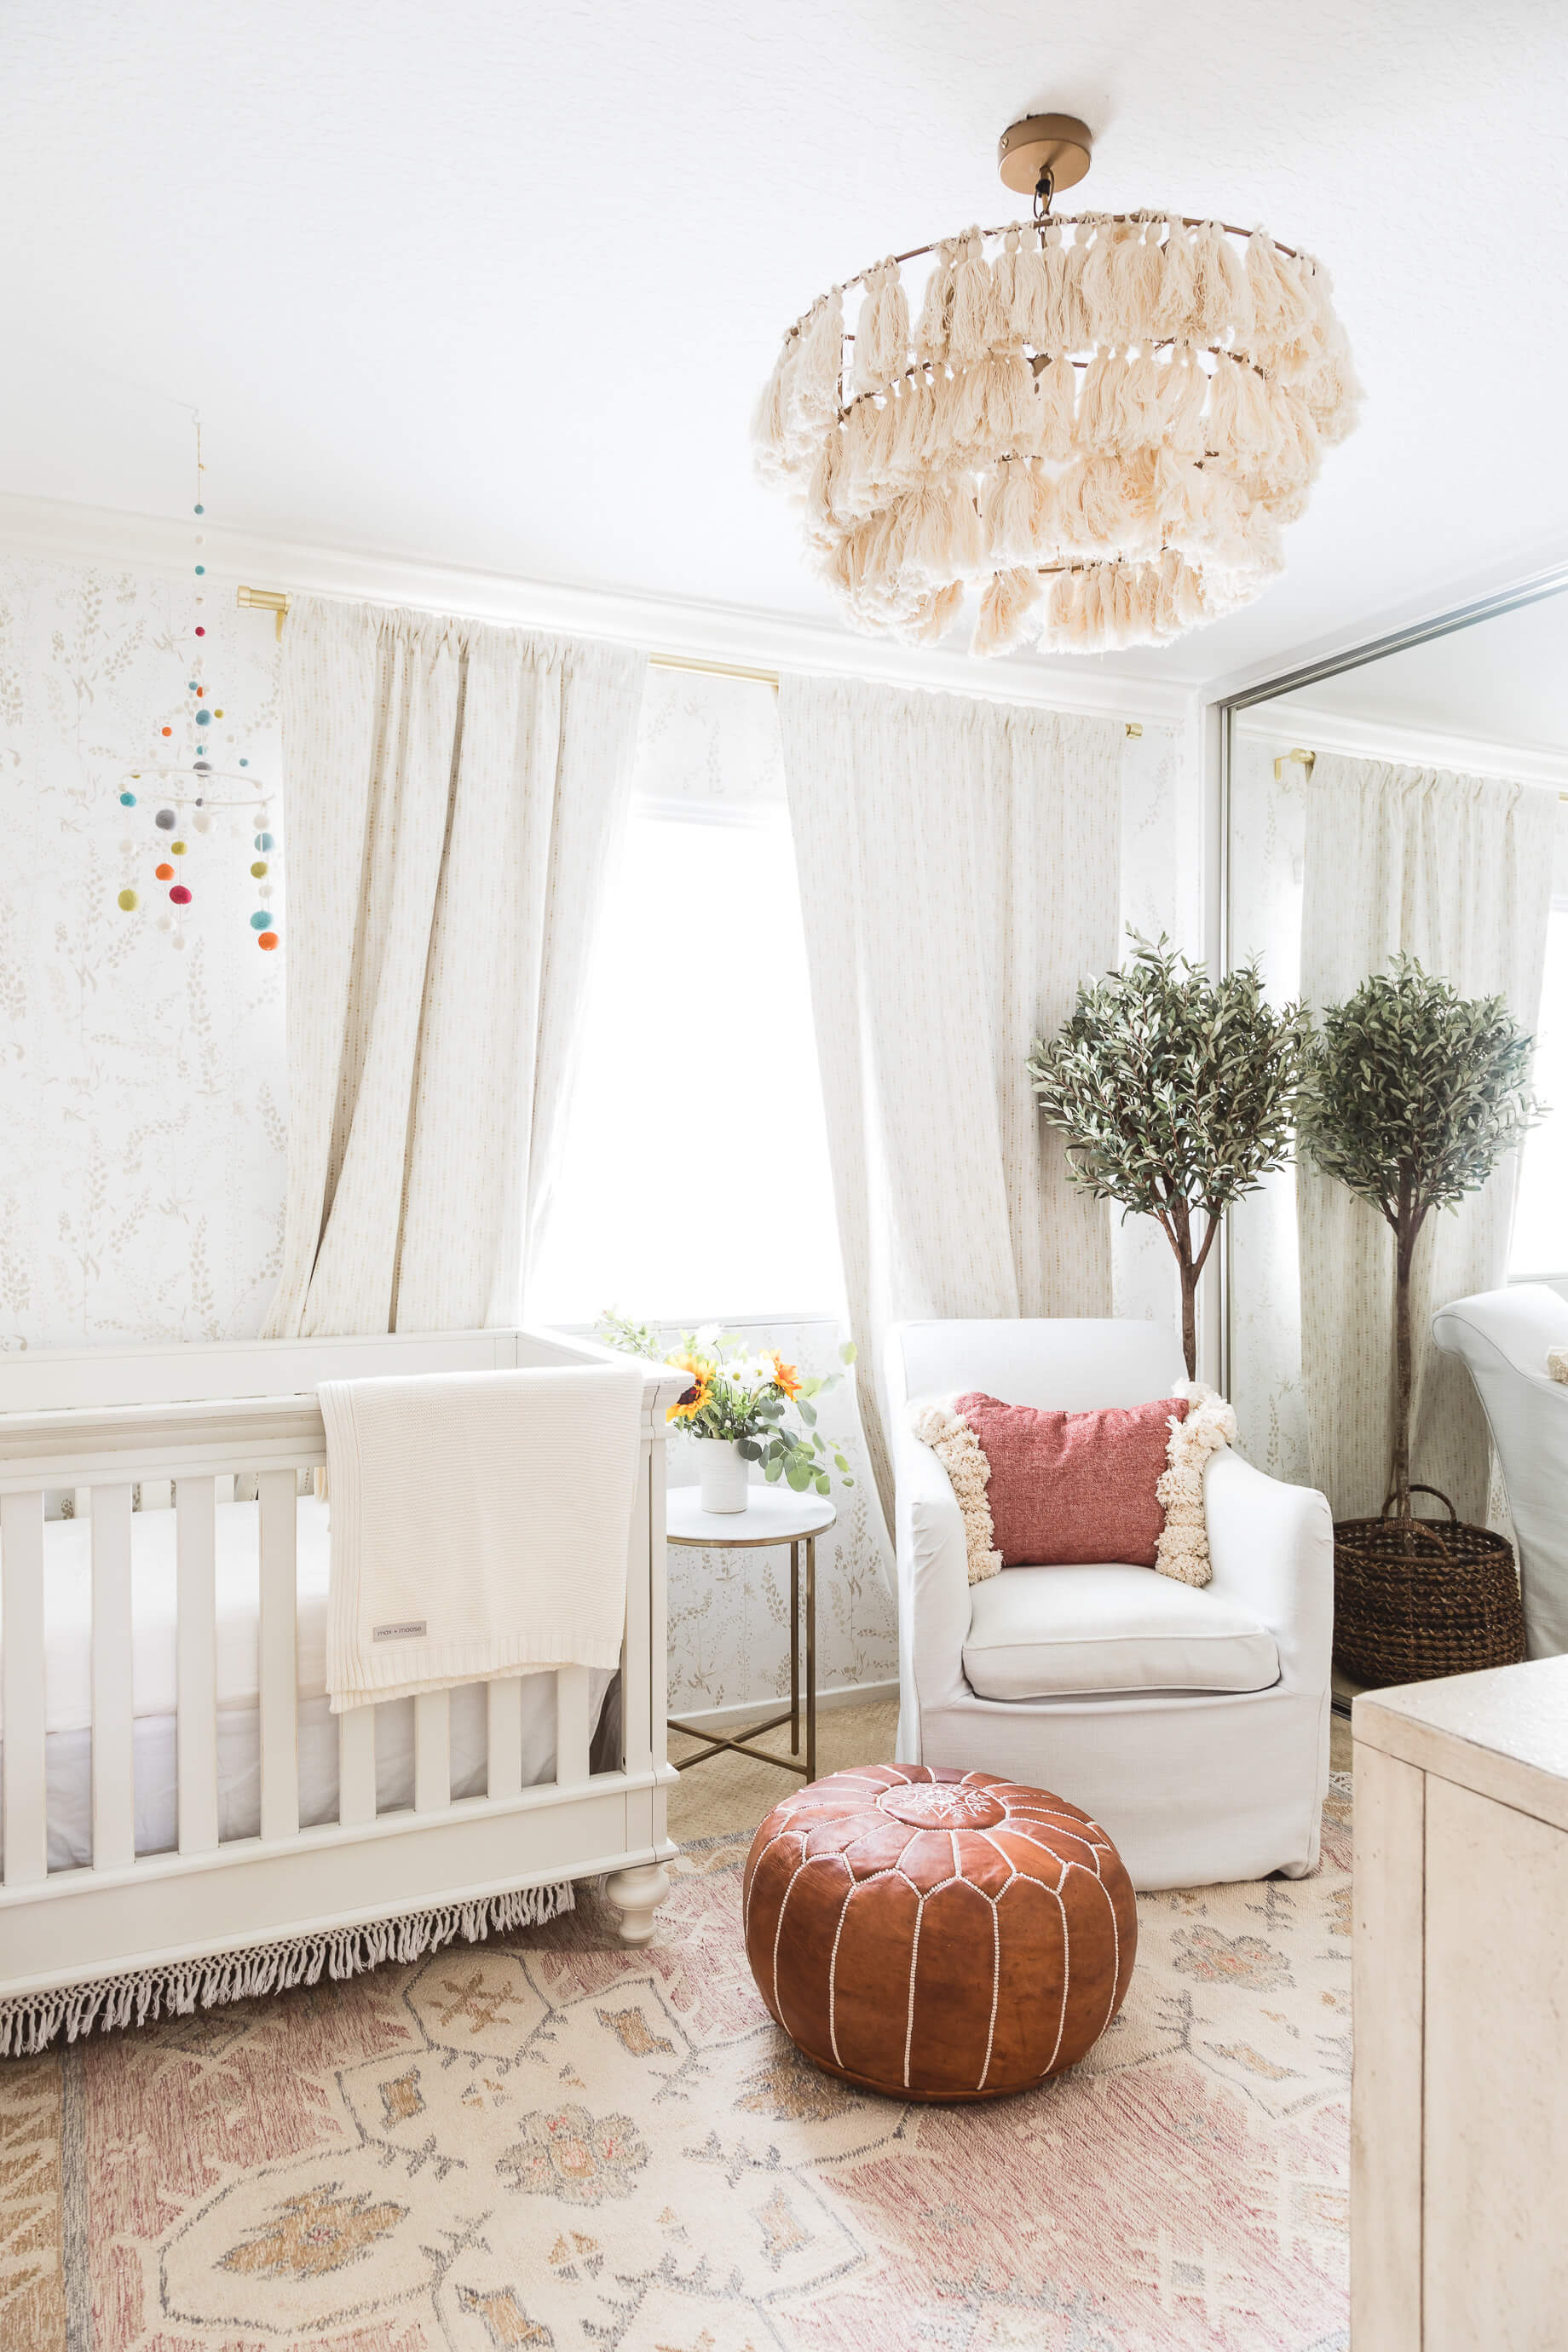 Baby Room Accessories: Our Little Girl's Nursery Decor